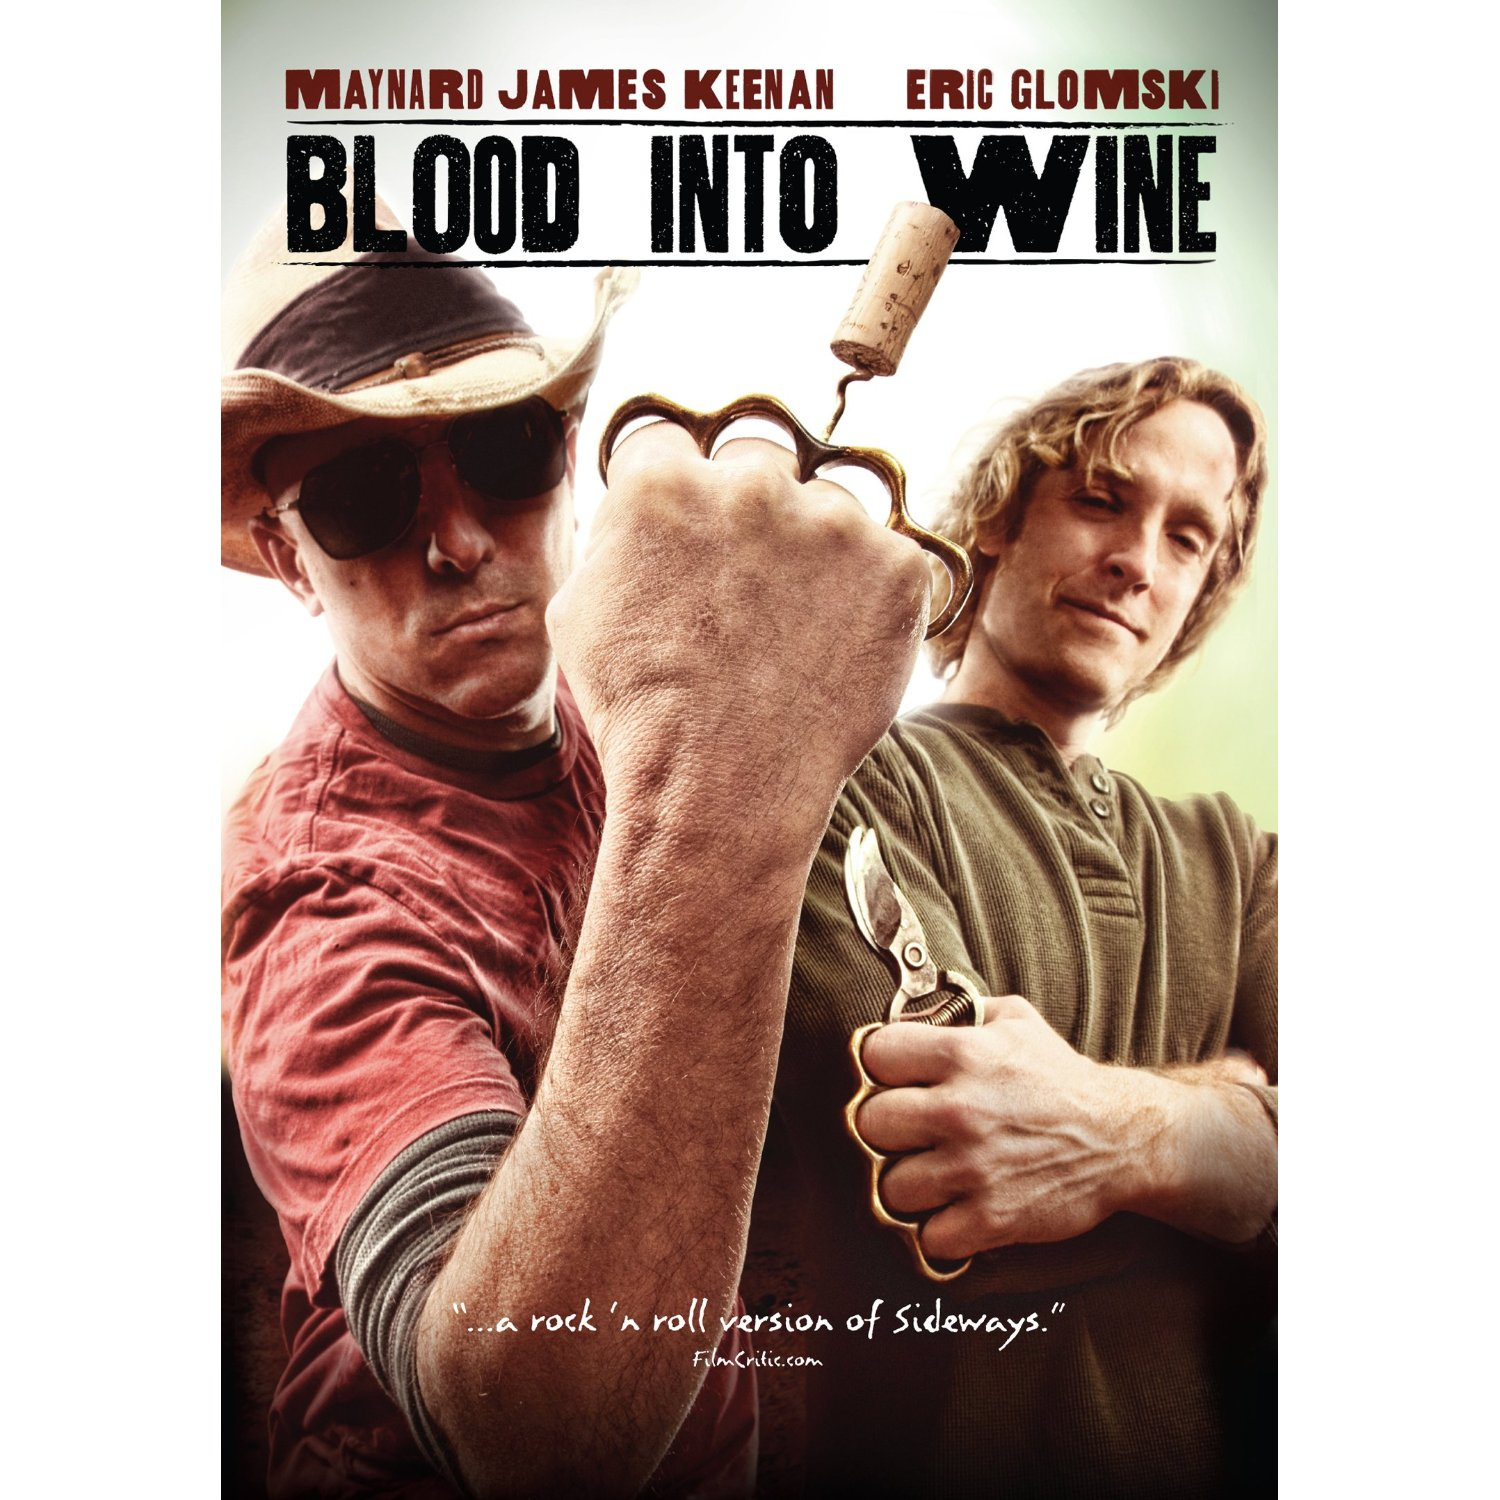 http://xmeetsy.files.wordpress.com/2011/02/blood-into-wine.jpg